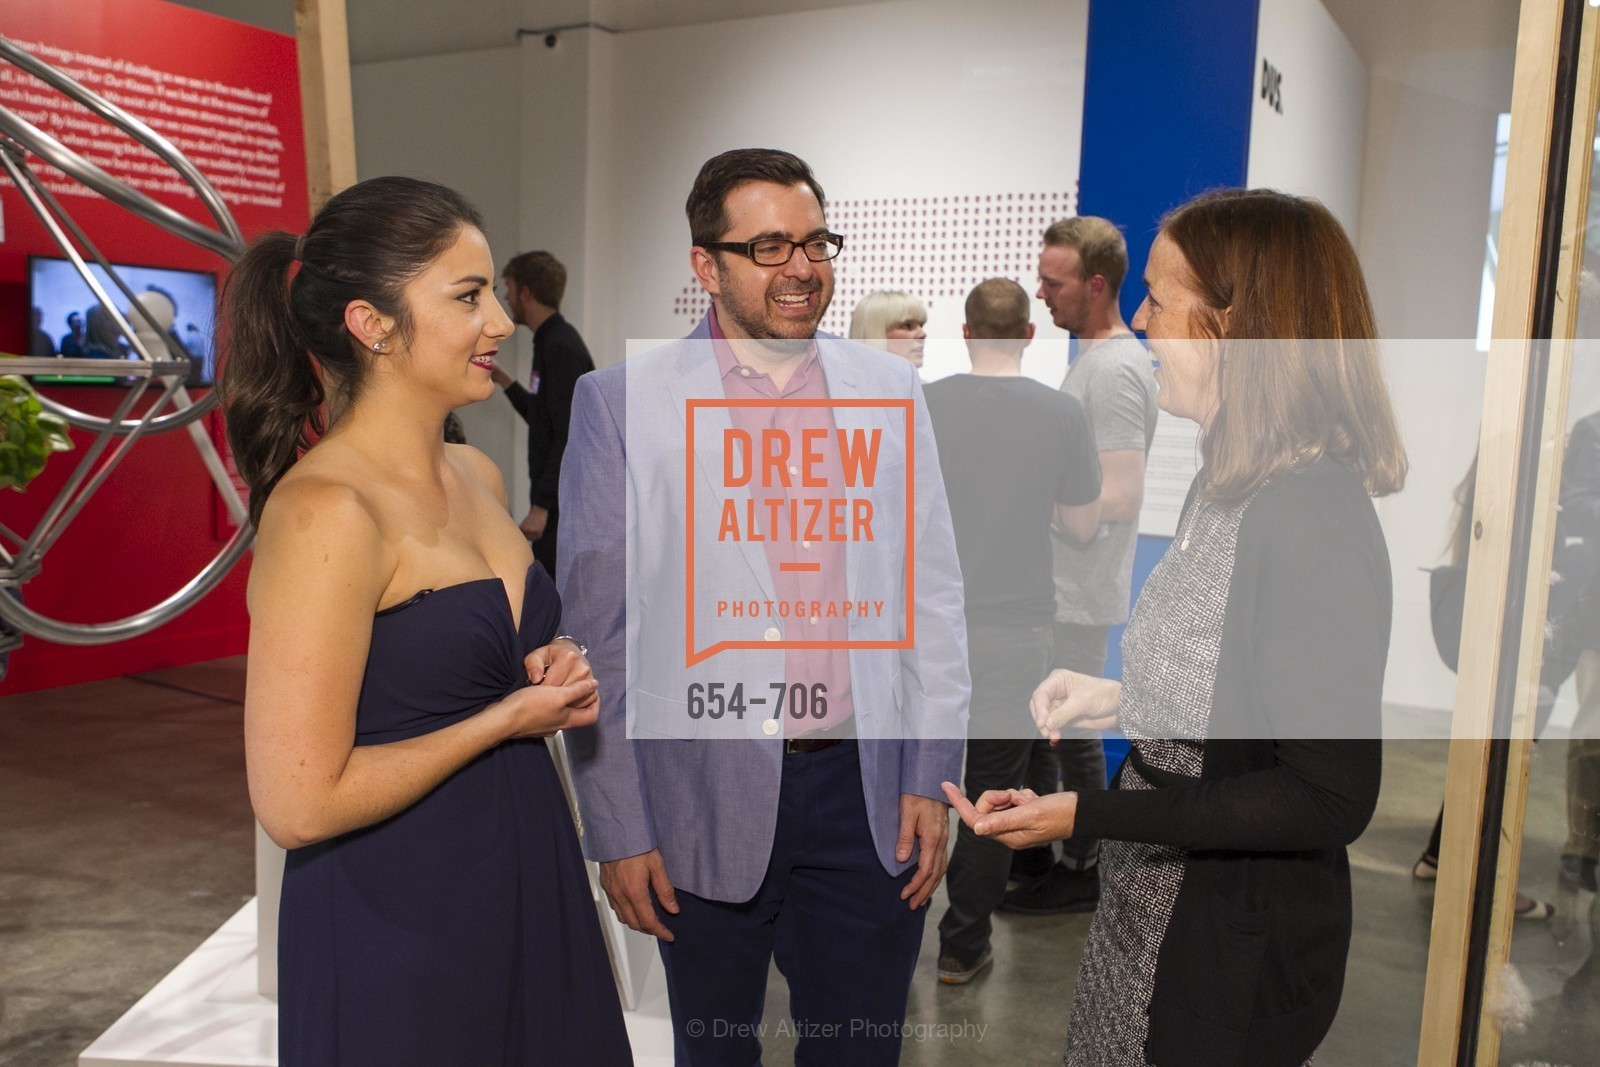 Sara Dermody, Lawrence Mendenhall, Sandra Keeley, Exhibit Opening at the MUSEUM OF CRAFT AND DESIGN - Hands Off: New Dutch Design at the Confluence of Technology & Craft, US, May 8th, 2015,Drew Altizer, Drew Altizer Photography, full-service agency, private events, San Francisco photographer, photographer california